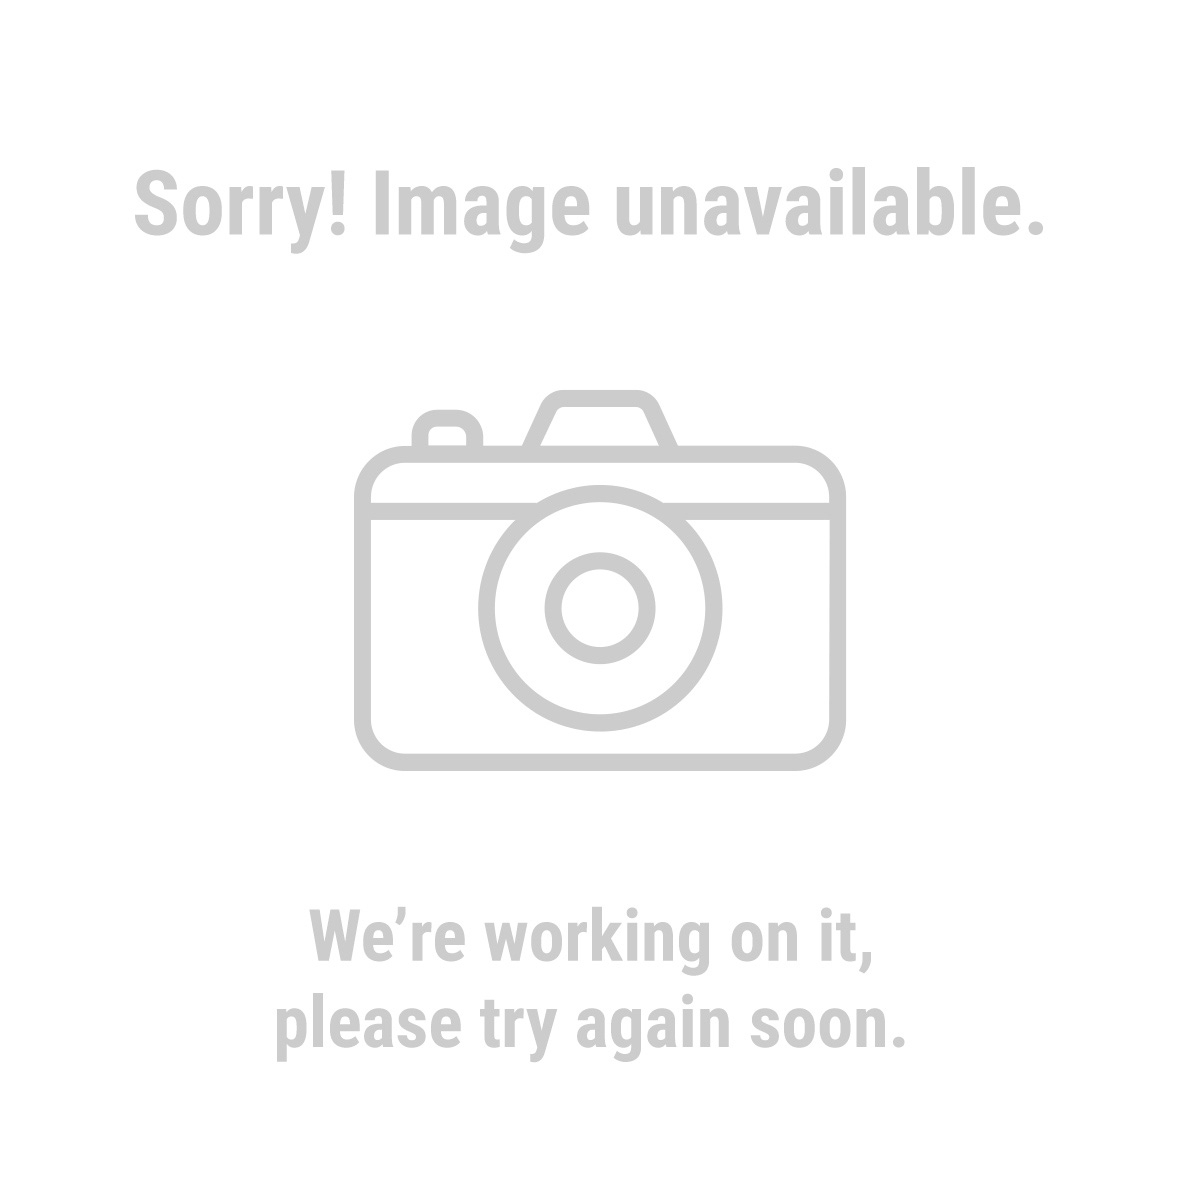 HFT® 61992 25 ft. x 16 Gauge Outdoor Extension Cord